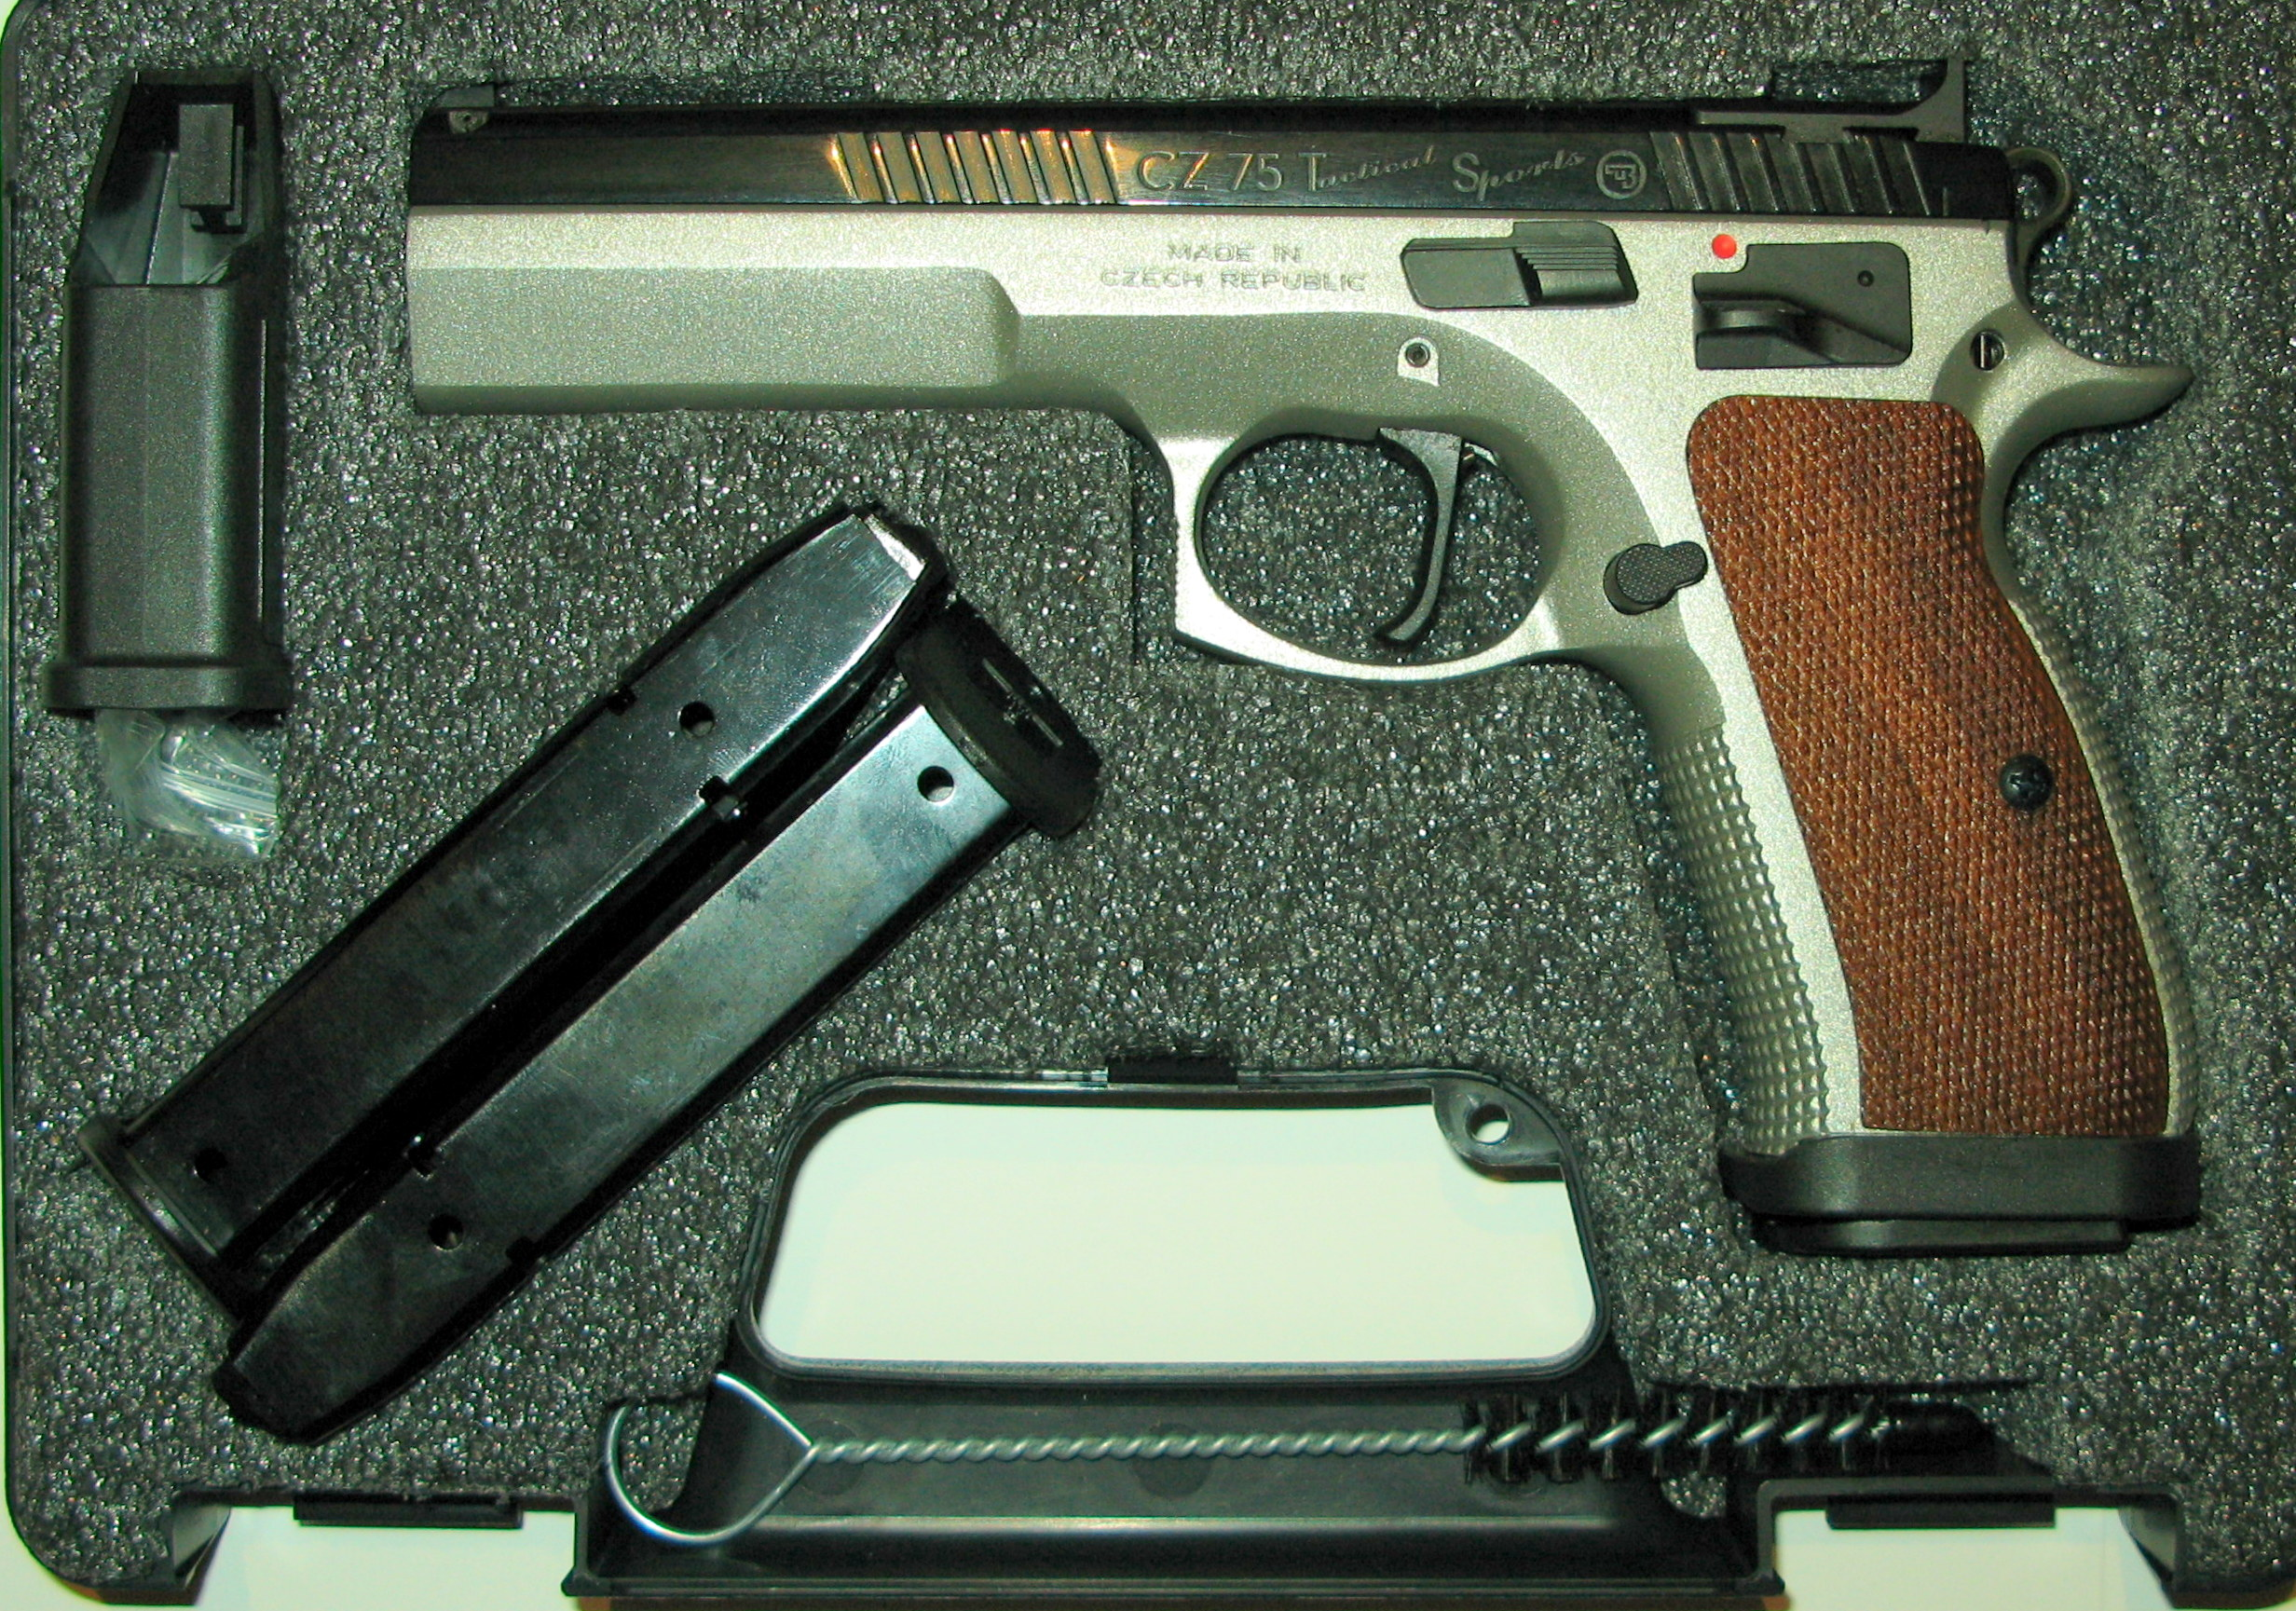 For Tactics or Trophies: CZ 75 Tactical Sport | S W A T